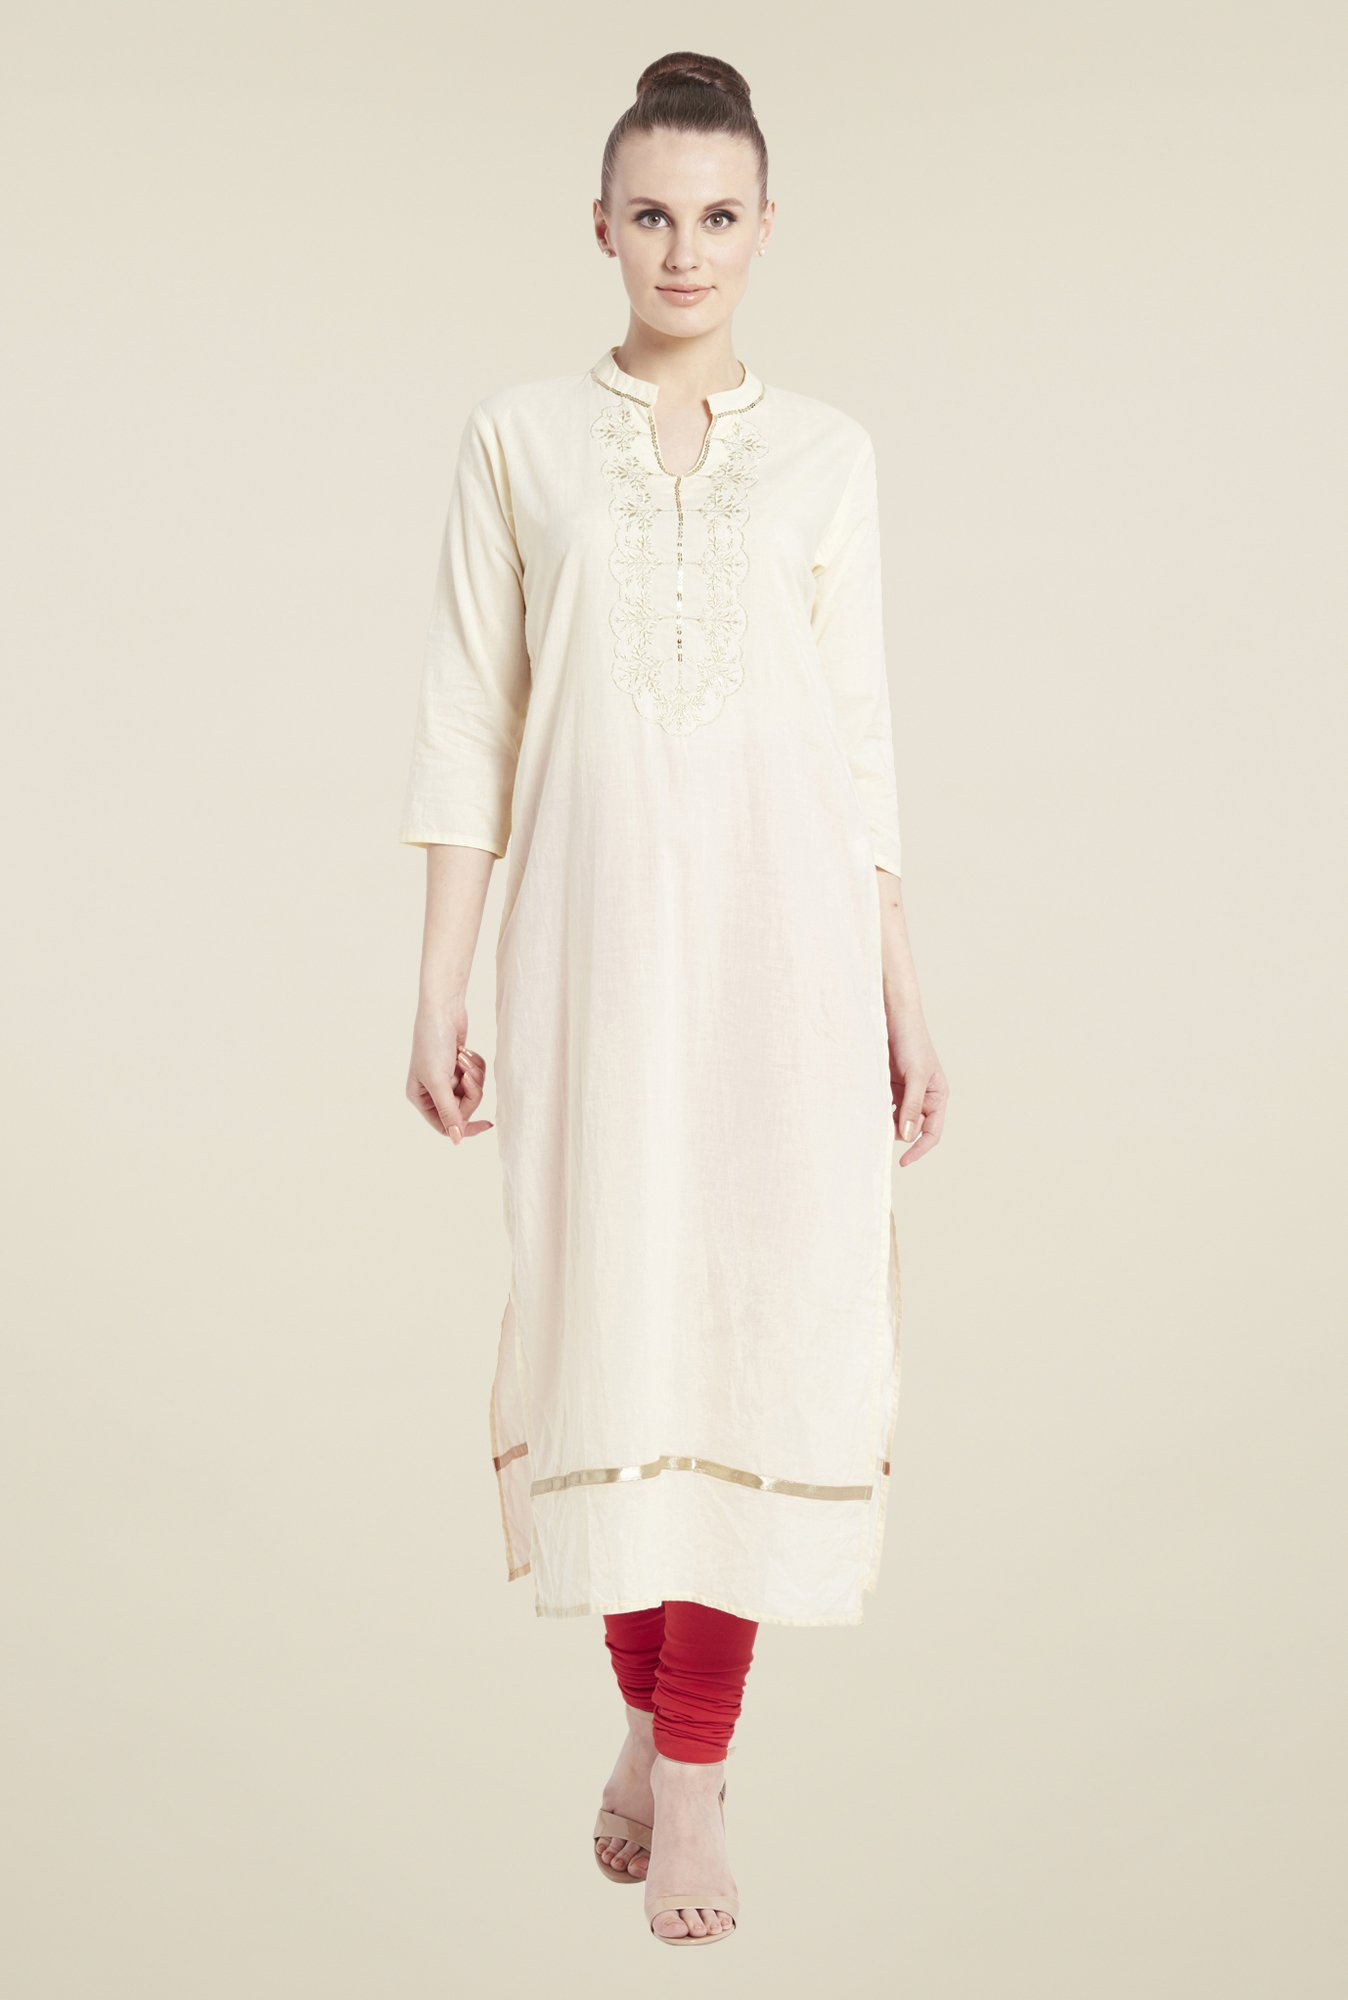 Globus Beige Embroidered Cotton Kurta